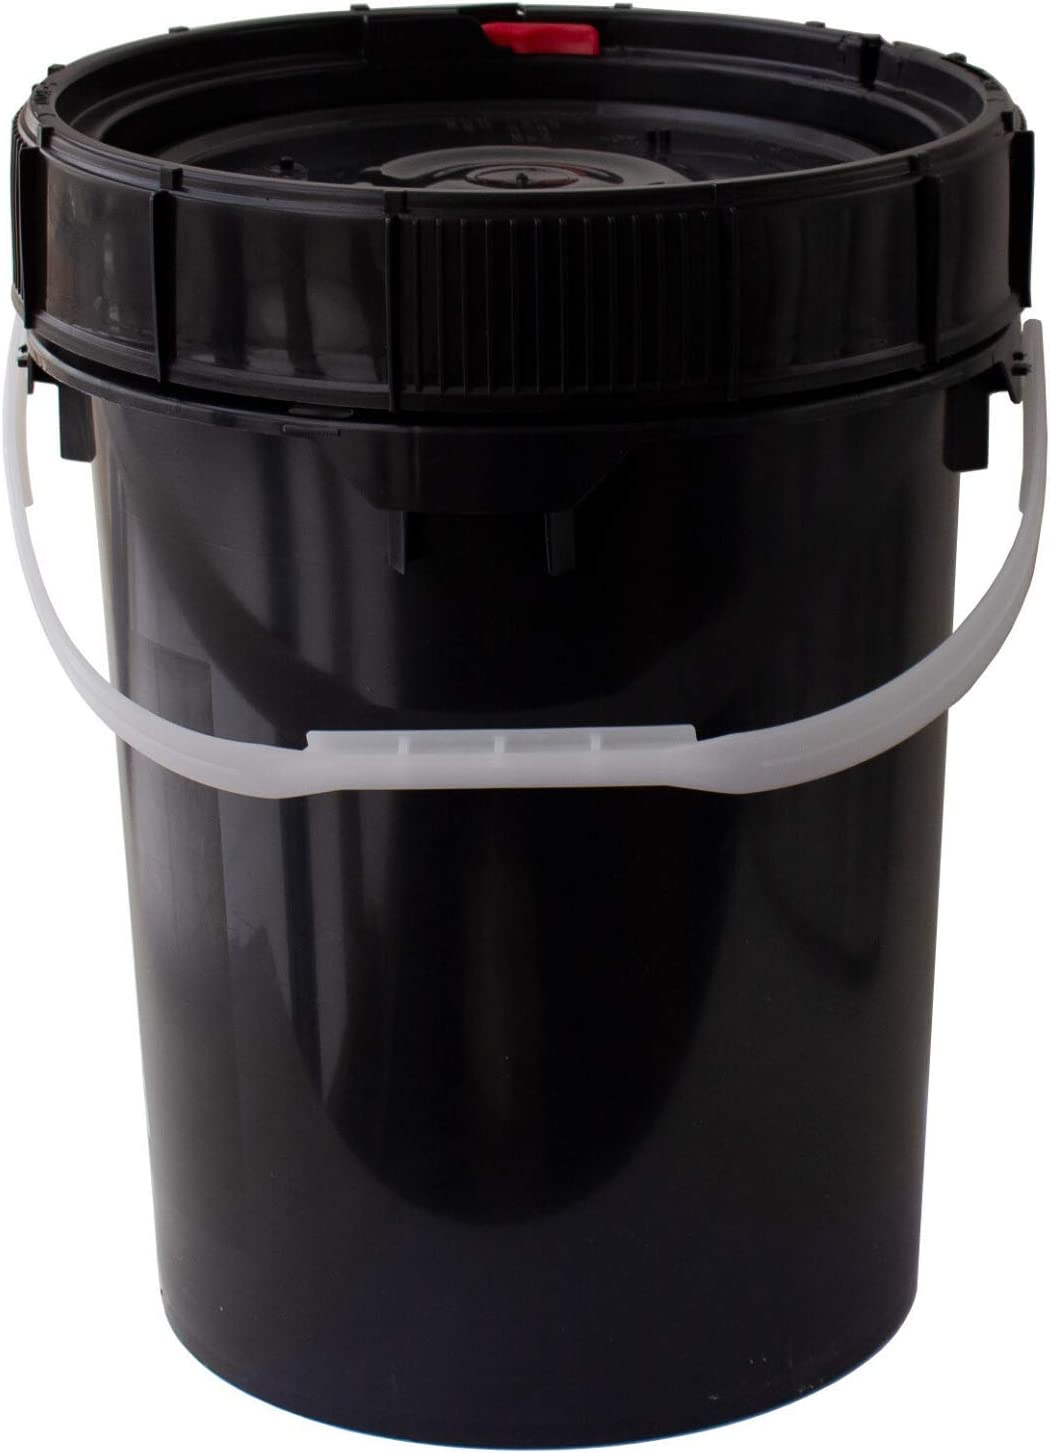 Screw Top Life Latch Bucket w/Easy Turn Ratcheting Lid – 5 Gallon – Black Quantity 1 – Spill Vak Branded – Air & Water Tight – Heavy Duty (90 Mil) – BPA Free, Food Grade – Stackable Storage Pail